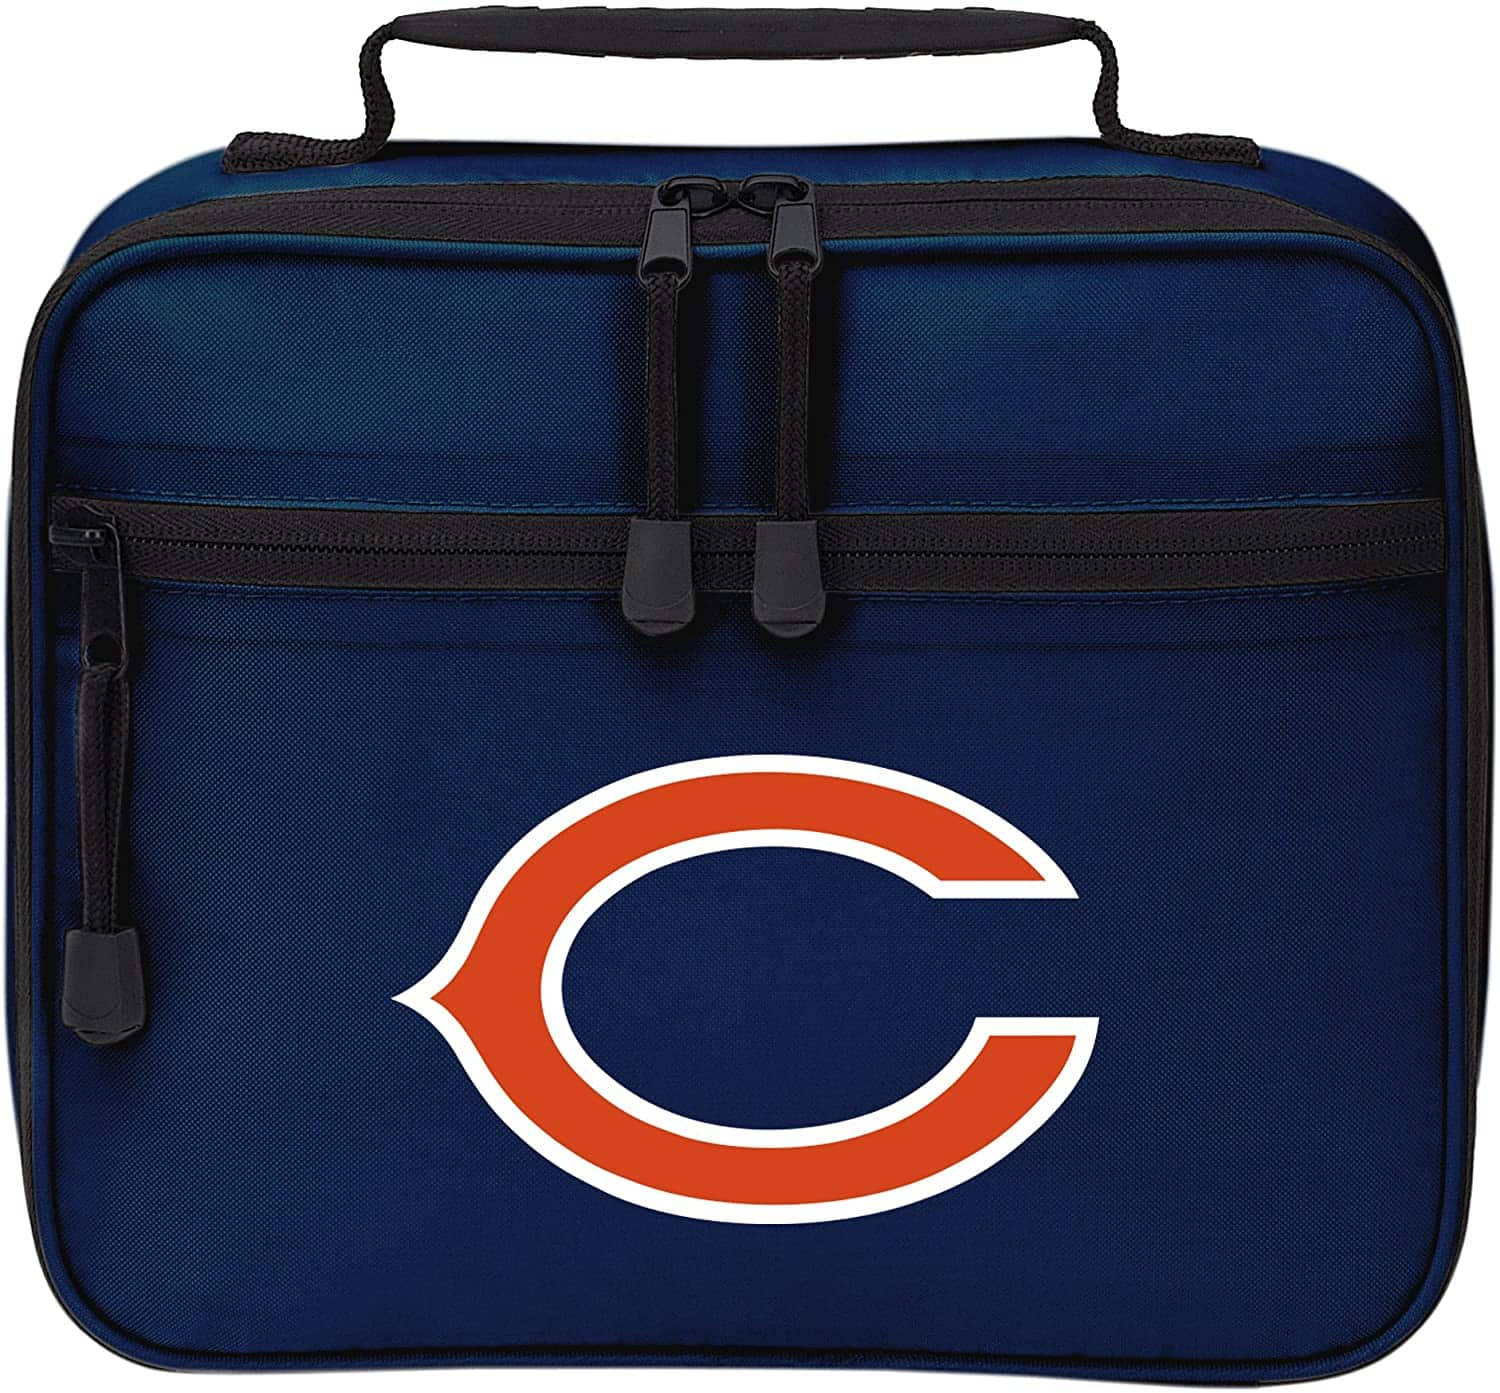 The Northwest Co. x NFL Cooltime Lunch Bag - Bears $5.67 + FS w/ Prime or orders of $25+